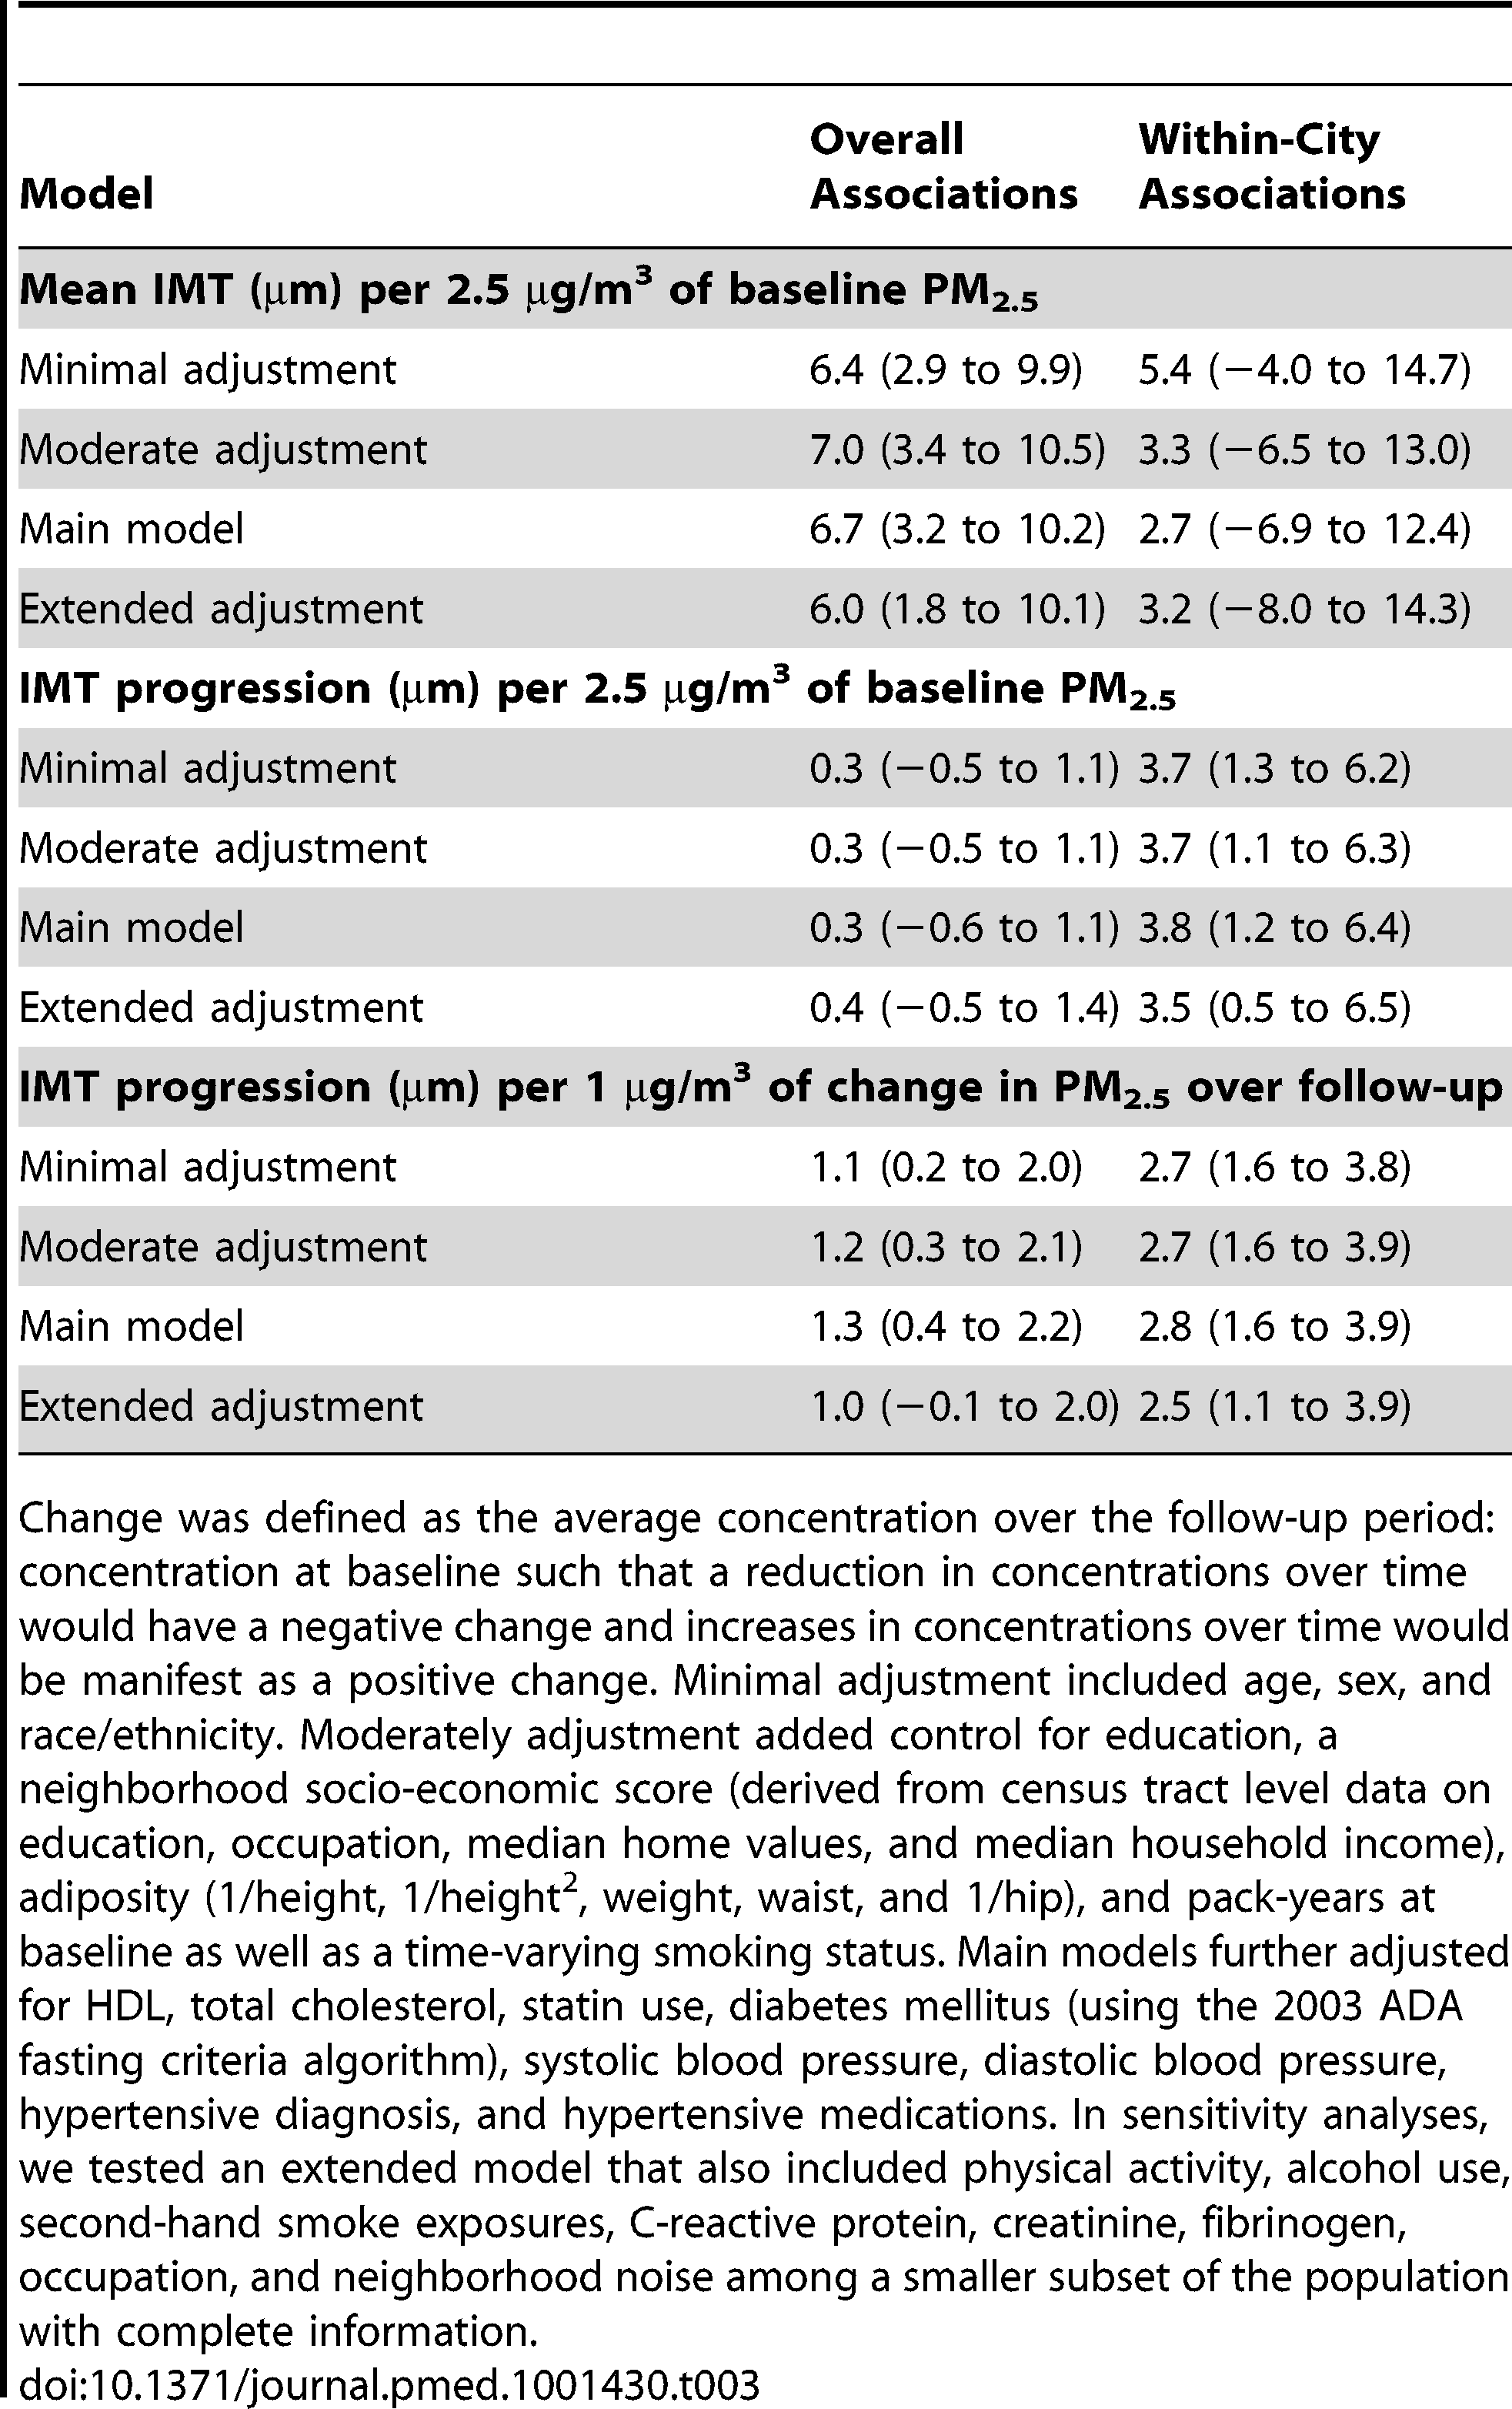 Mean differences (95% CI) in IMT at baseline and in IMT progression over time associated with PM<sub>2.5</sub> concentrations prior to baseline and change between follow-up and baseline, with and without control for metropolitan area.